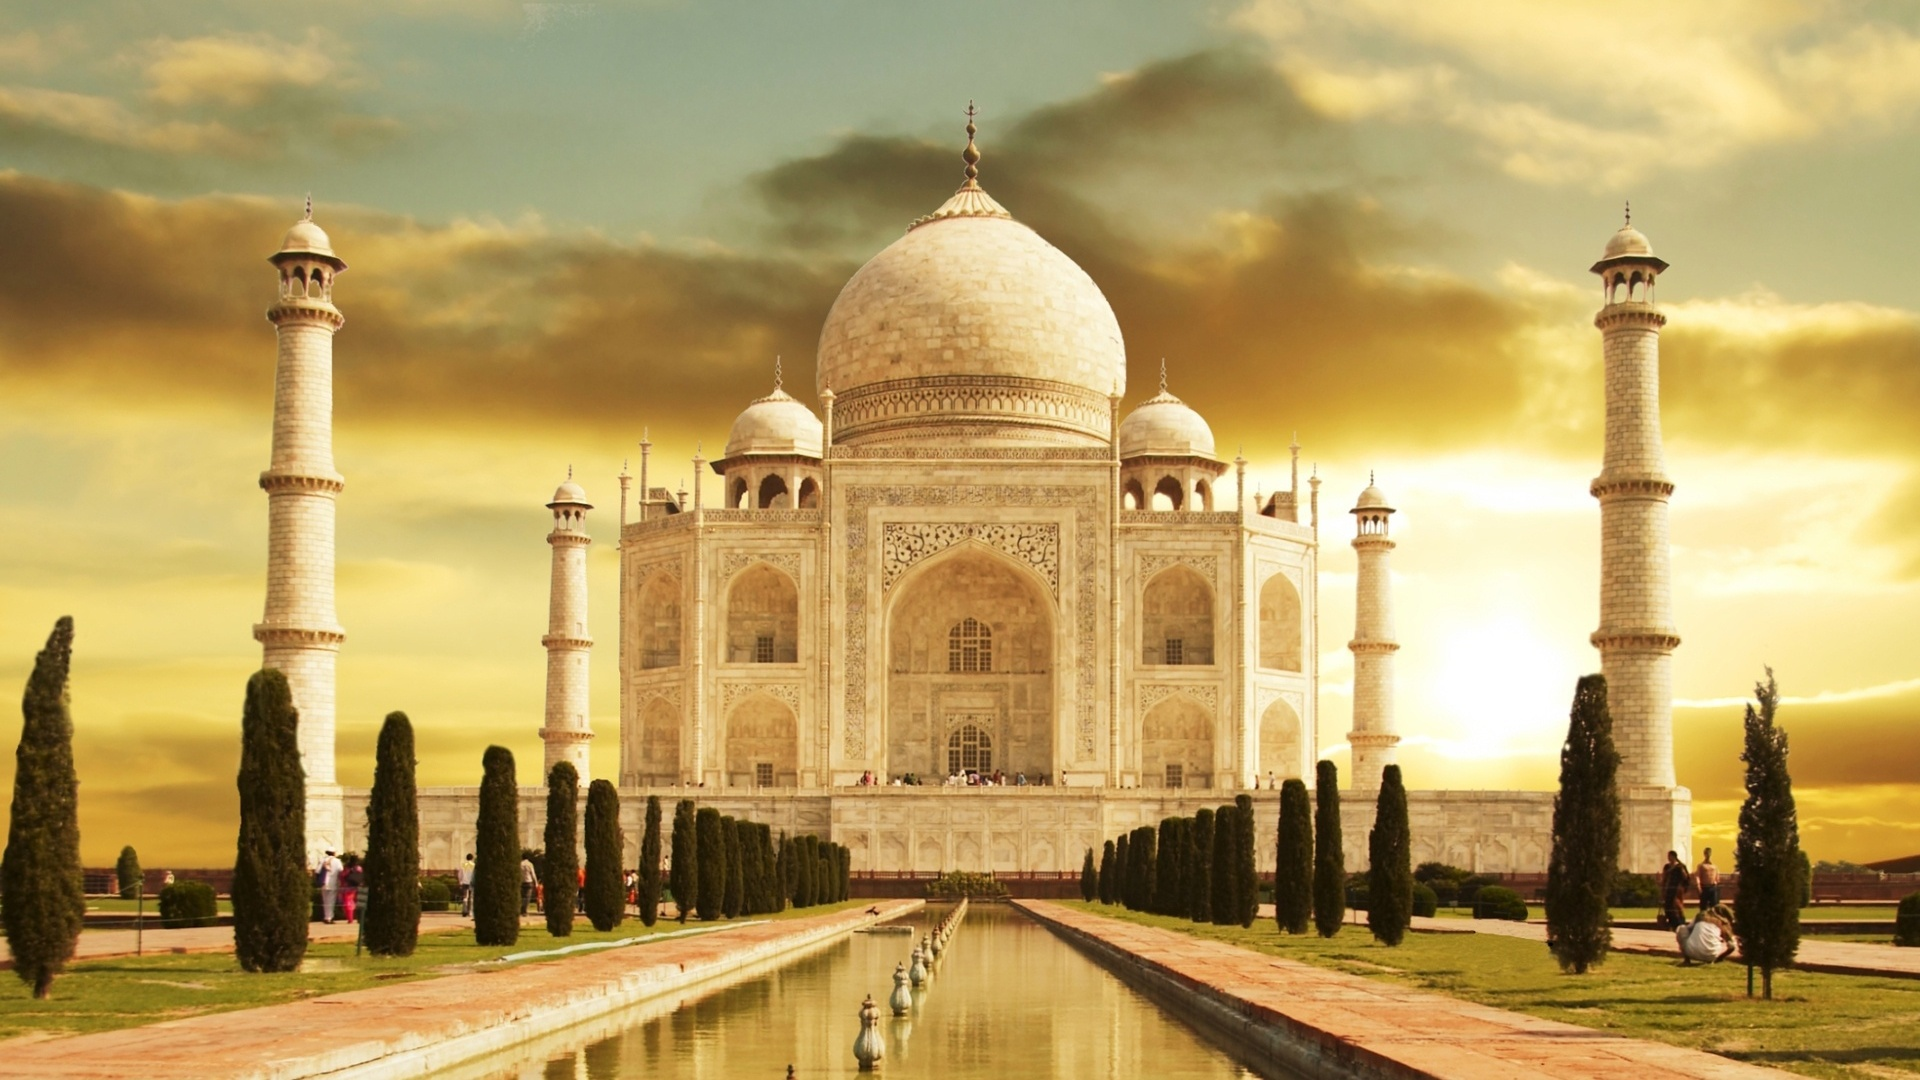 Taj Mahal Backgrounds